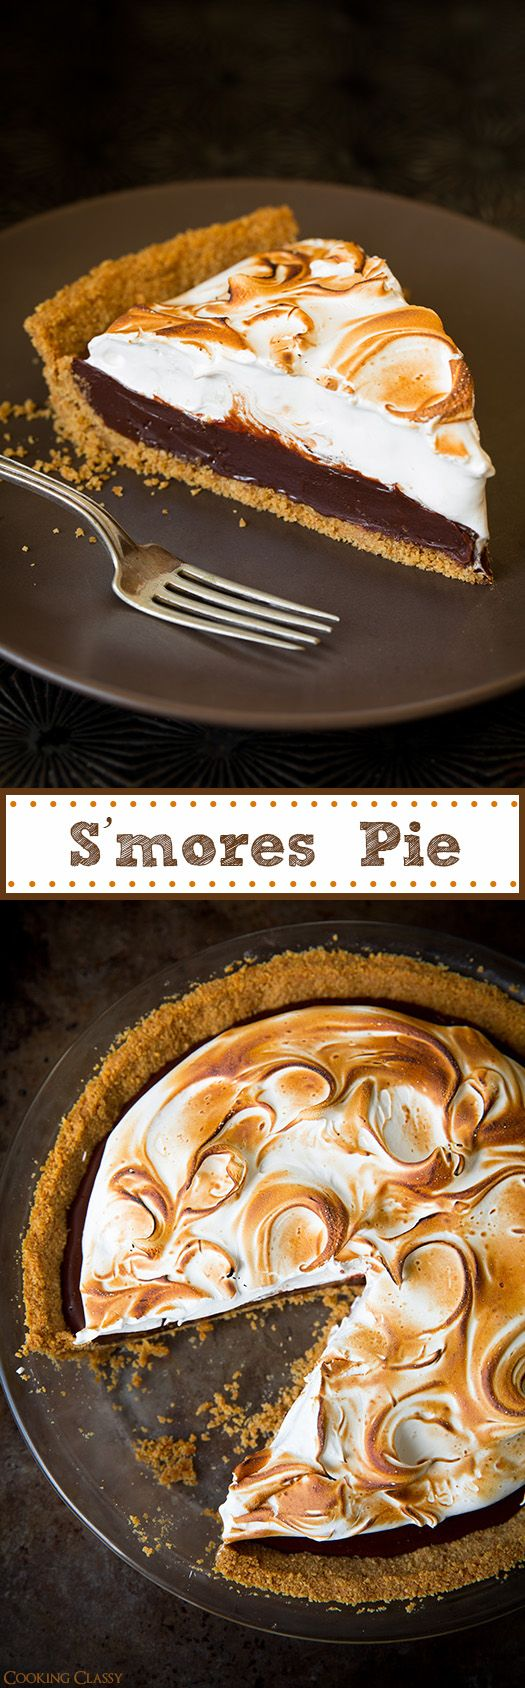 S'mores Pie | Cooking Classy